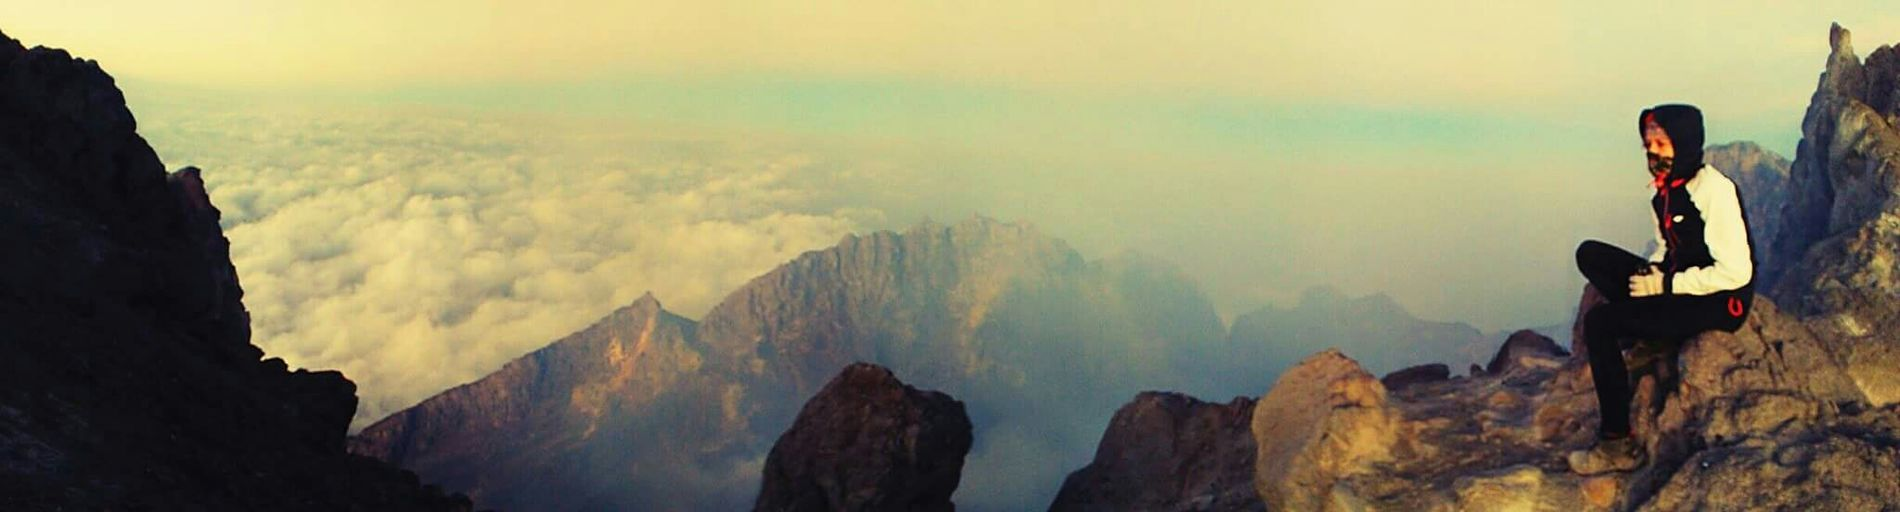 THE SUMMIT Merapi Volcano 2968sml Landscape EyeEm Indonesia Volcano Crater Polskagirl Bestfriend Odważna Polska Warsaw Indonesia_photography Yogyakarta, Indonesia Hello World Get Lost Climbing